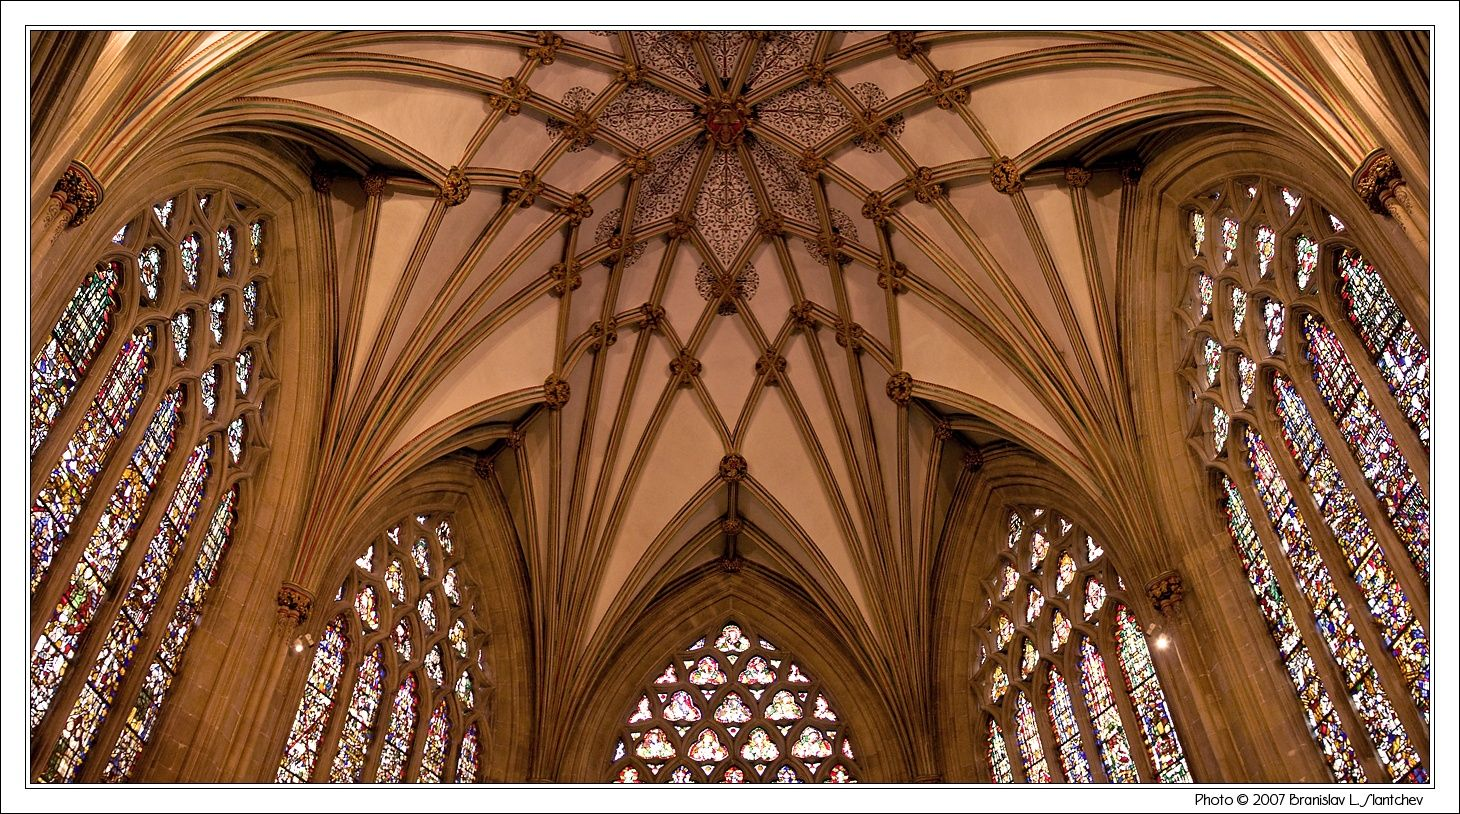 Englan,: Wells Cathedral: The Star Vault of the Lady Chapel